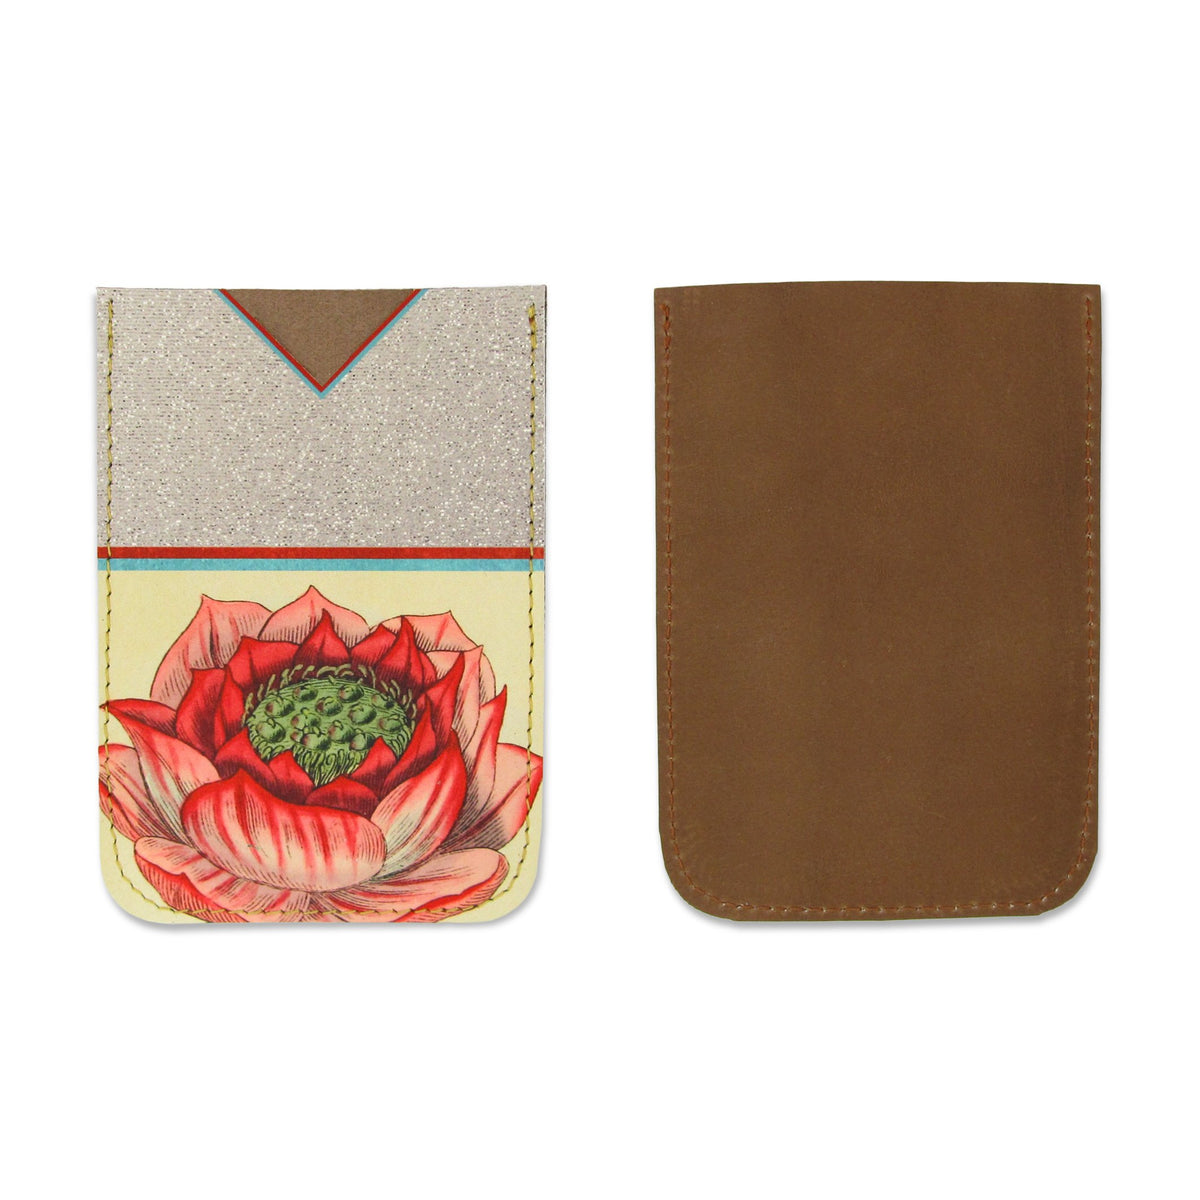 Leather Card Holder / Phone Sticker Wallet Pocket - Lotus Flower Wallet Tovi Sorga